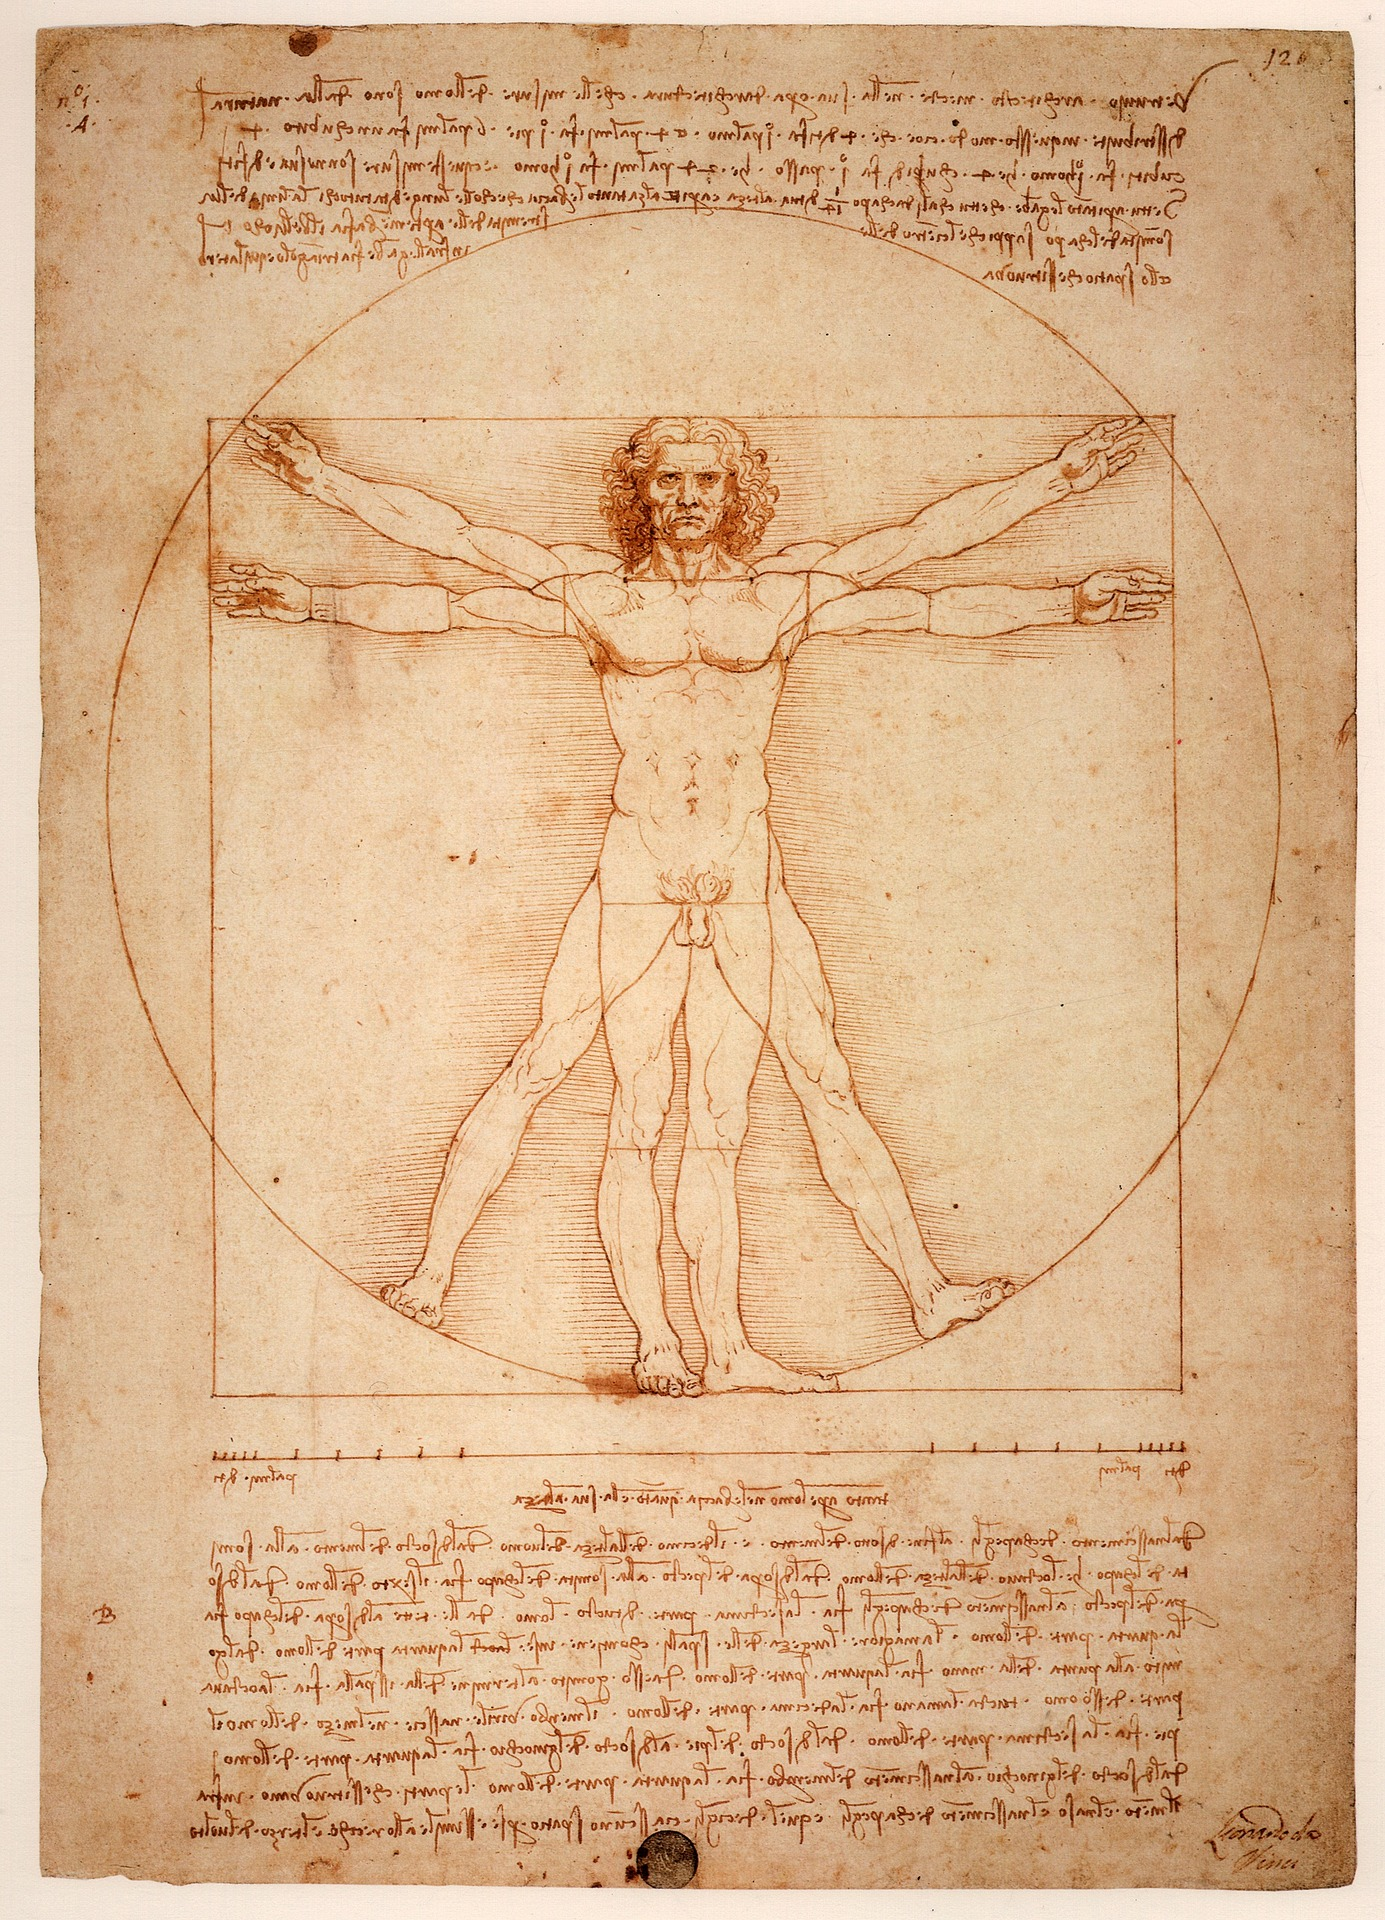 Da Vinci's Historical Image of the Human Body